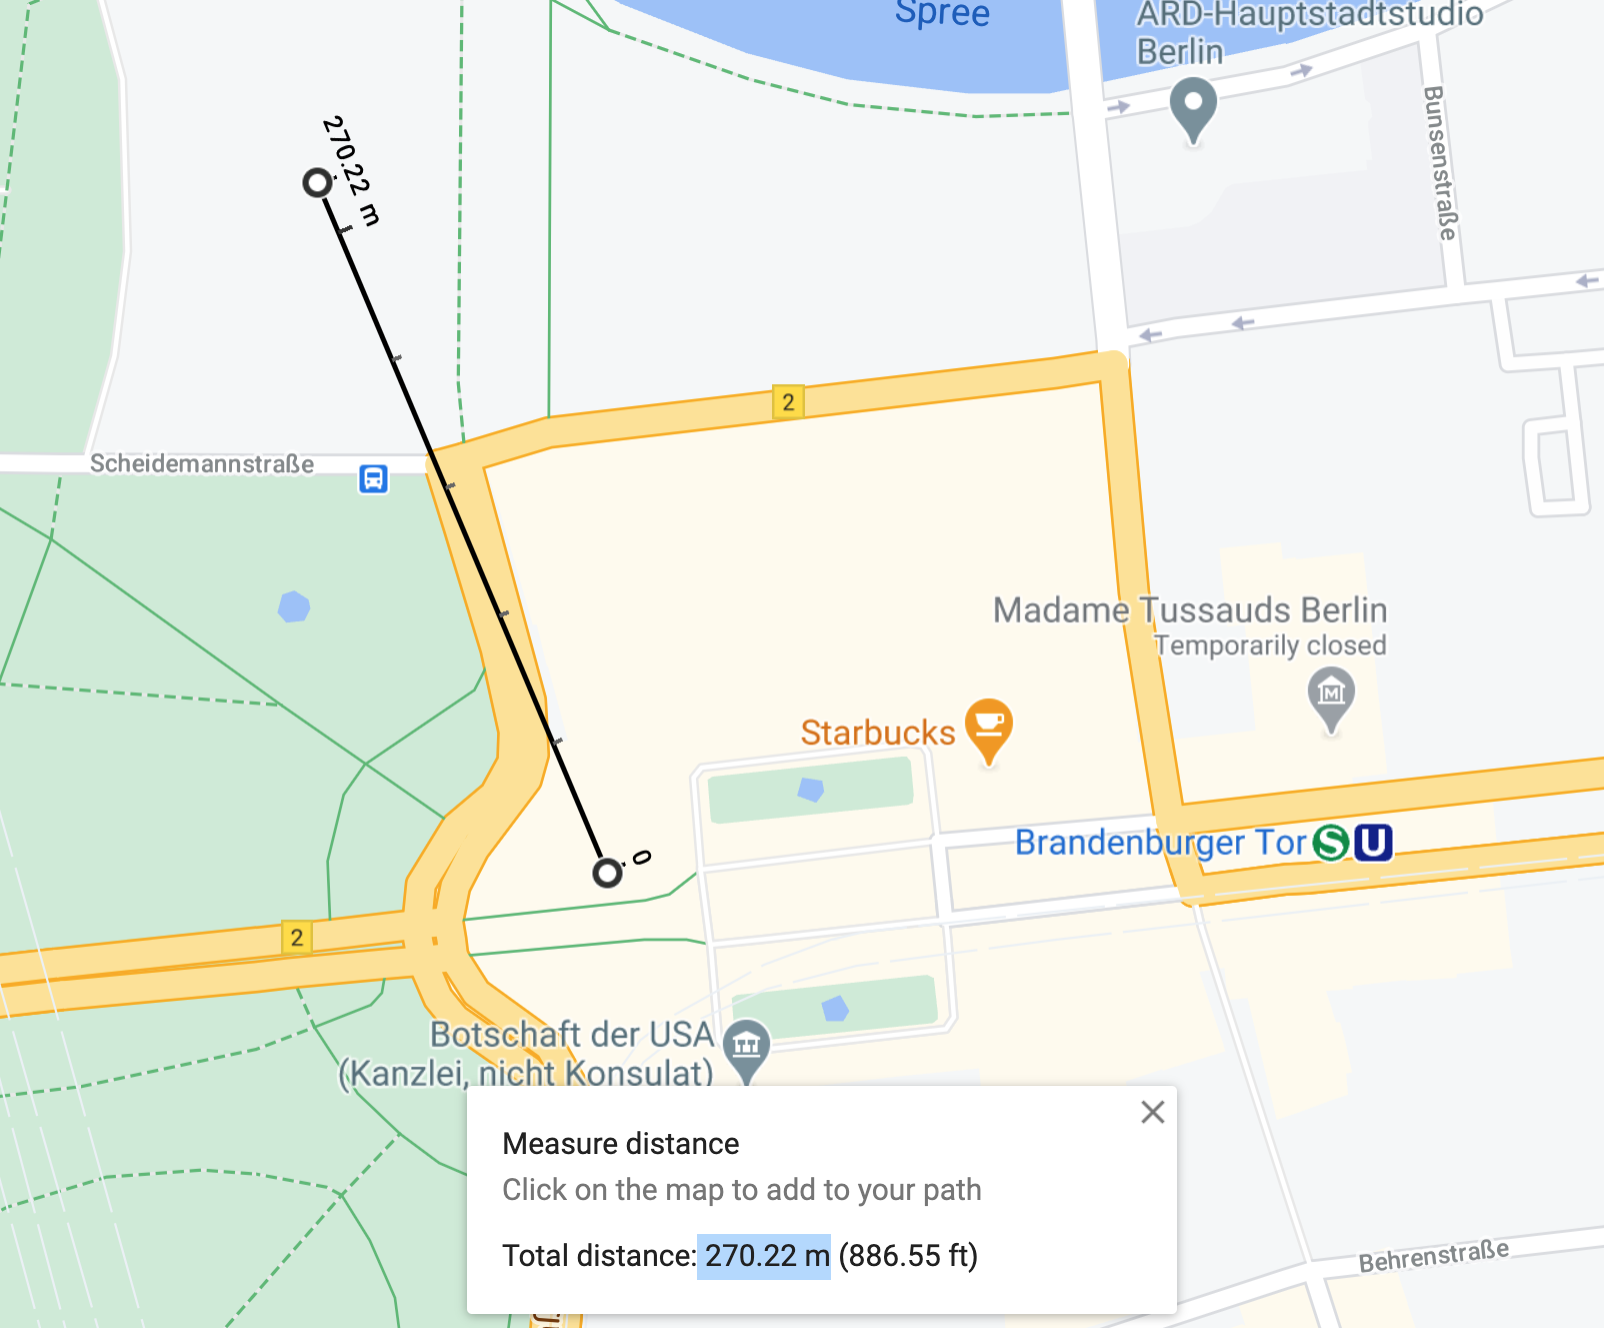 Distance between Reichstag and Brandenburg Gate in Berlin as shown in Google Maps